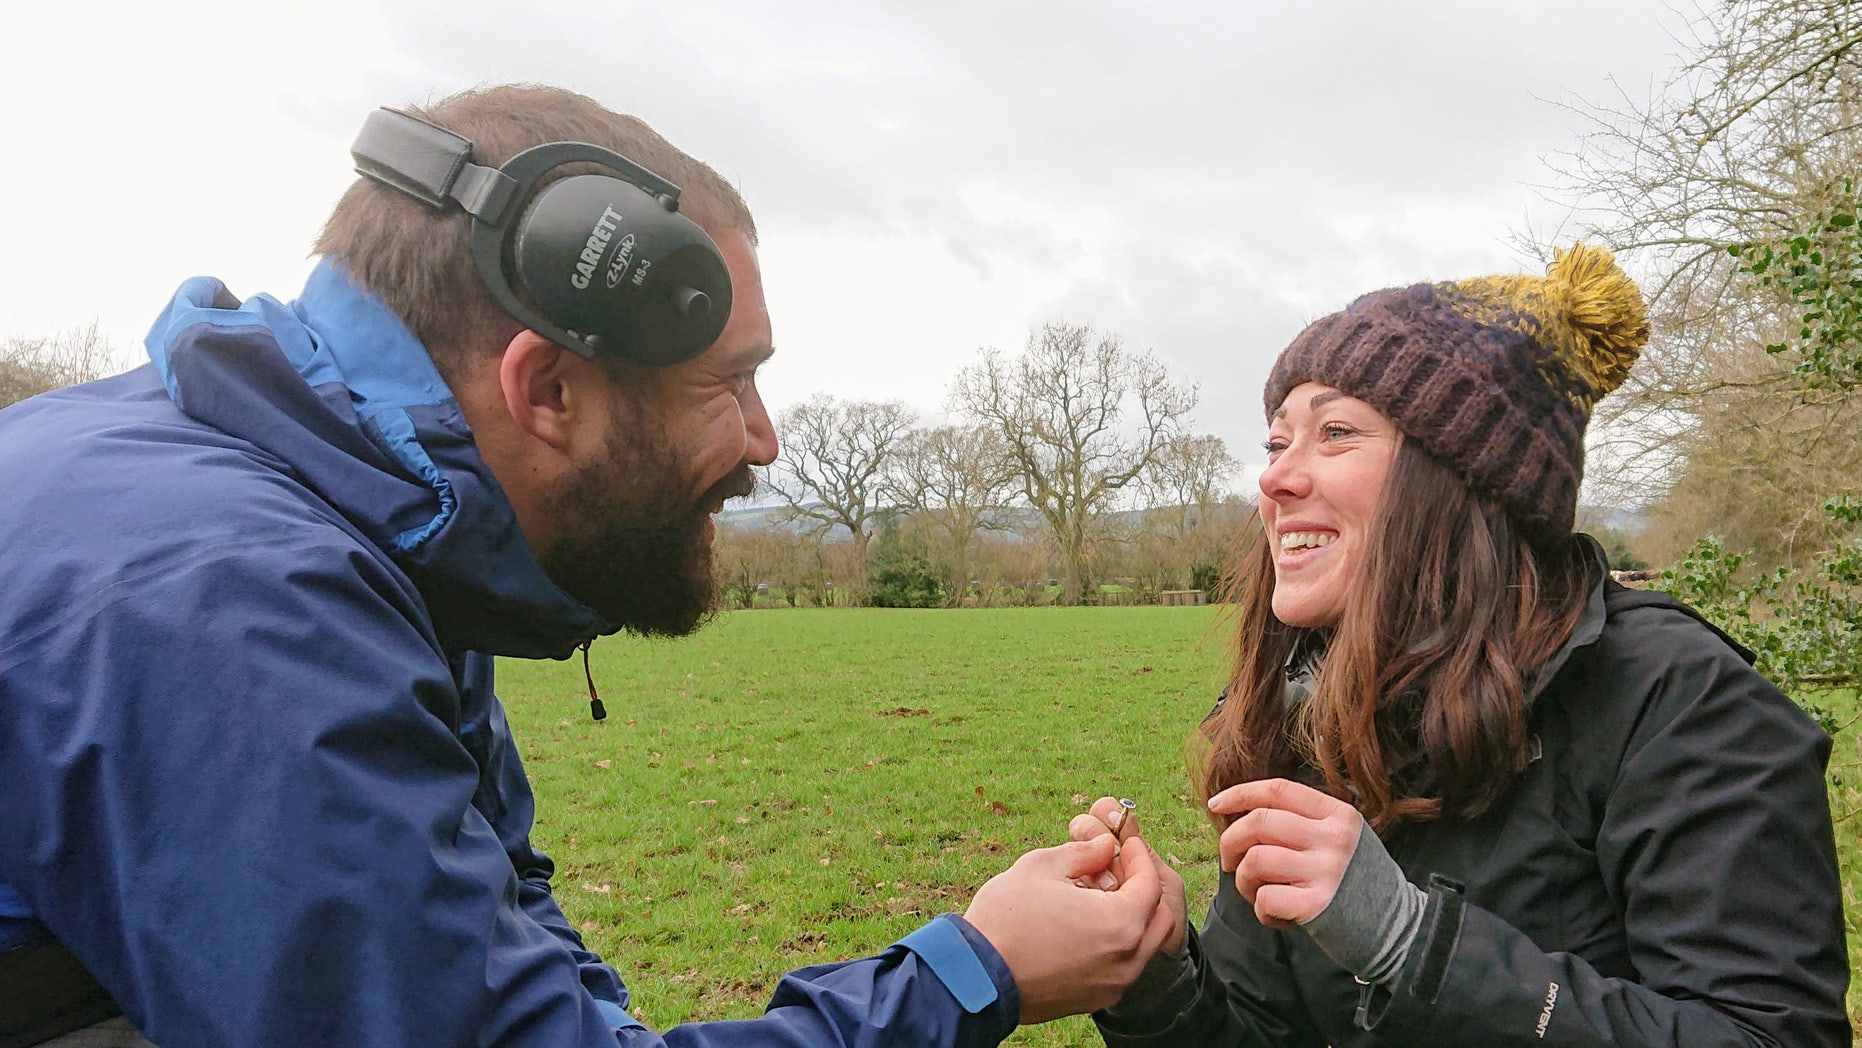 Jamille Swainson proposed to girlfriend Harriet Haseler after arranging for her to find the ring during an outing in Shropshire, England.